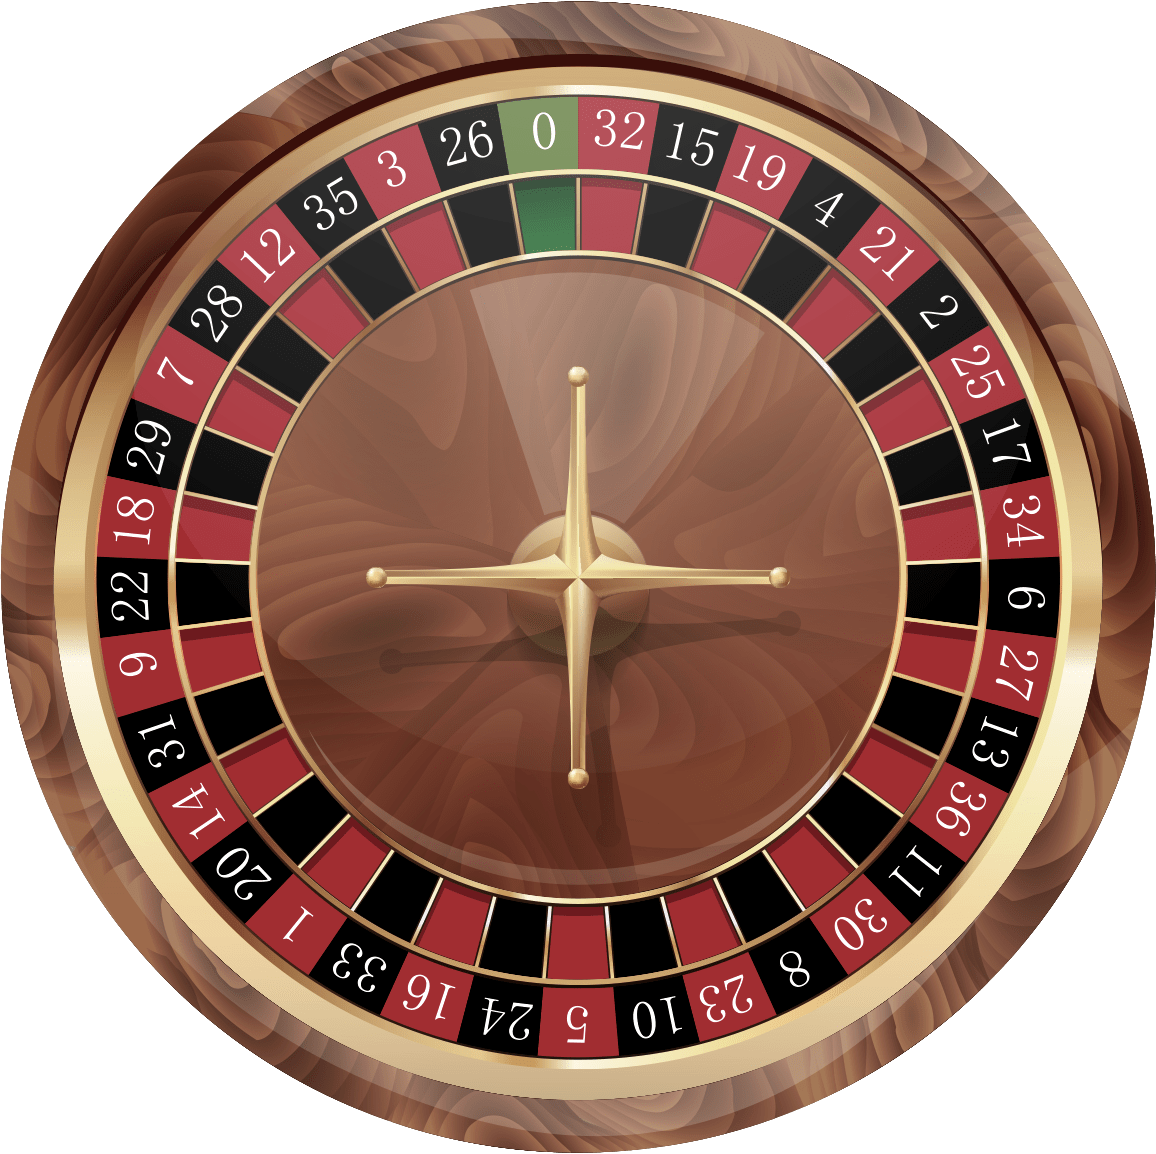 The Return on Investment (ROI) Concept Playing Roulette